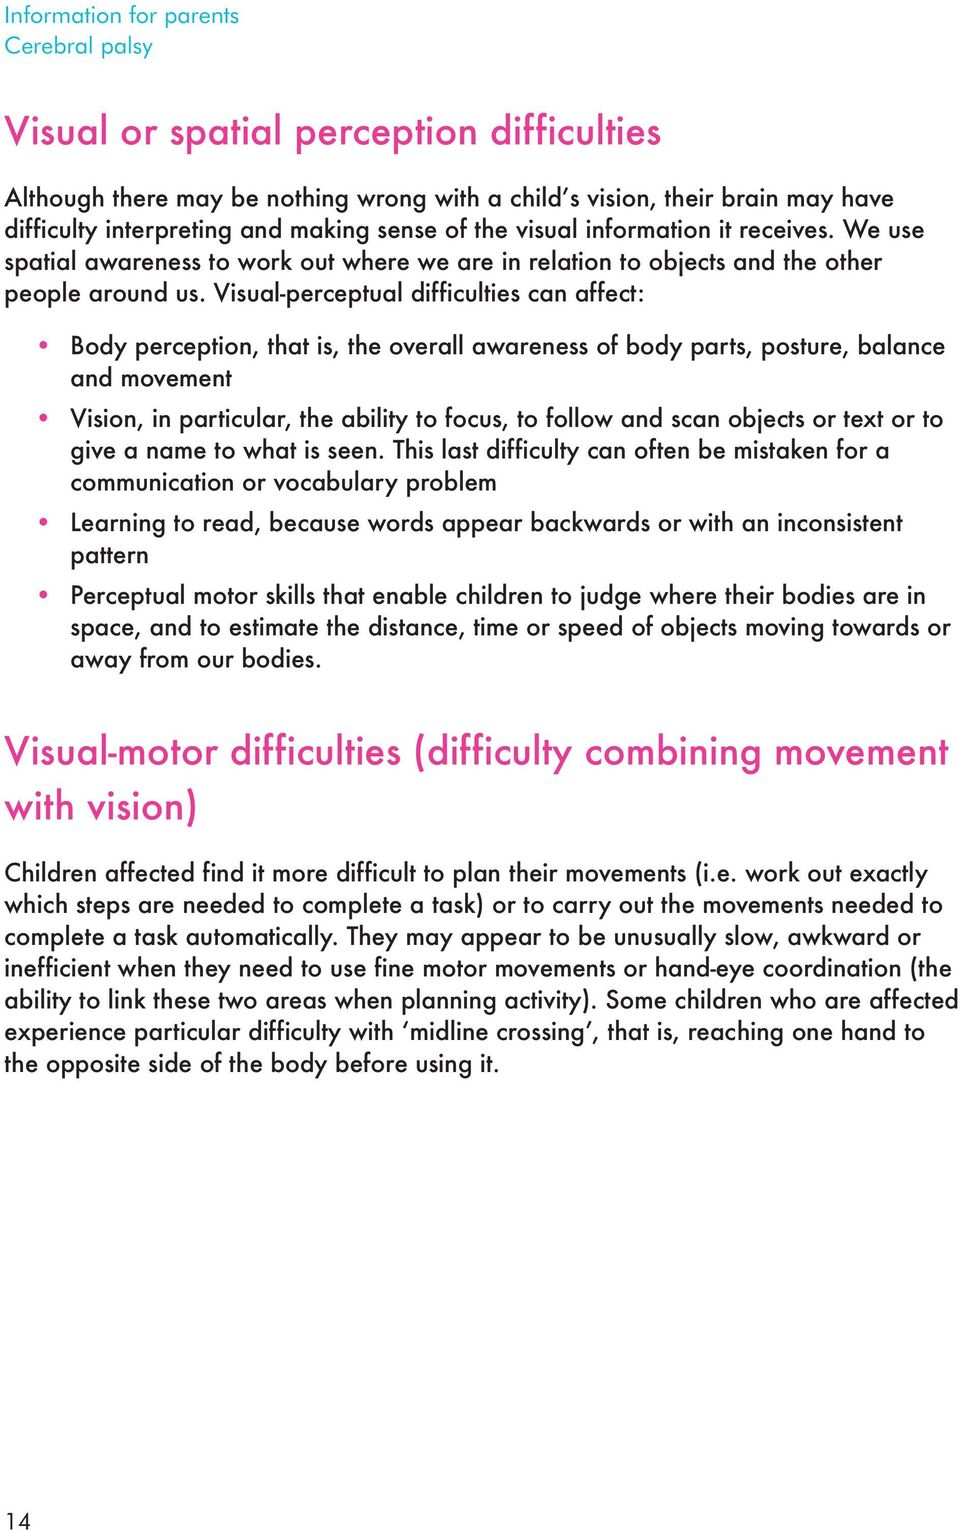 Visual-perceptual difficulties can affect: Body perception, that is, the overall awareness of body parts, posture, balance and movement Vision, in particular, the ability to focus, to follow and scan